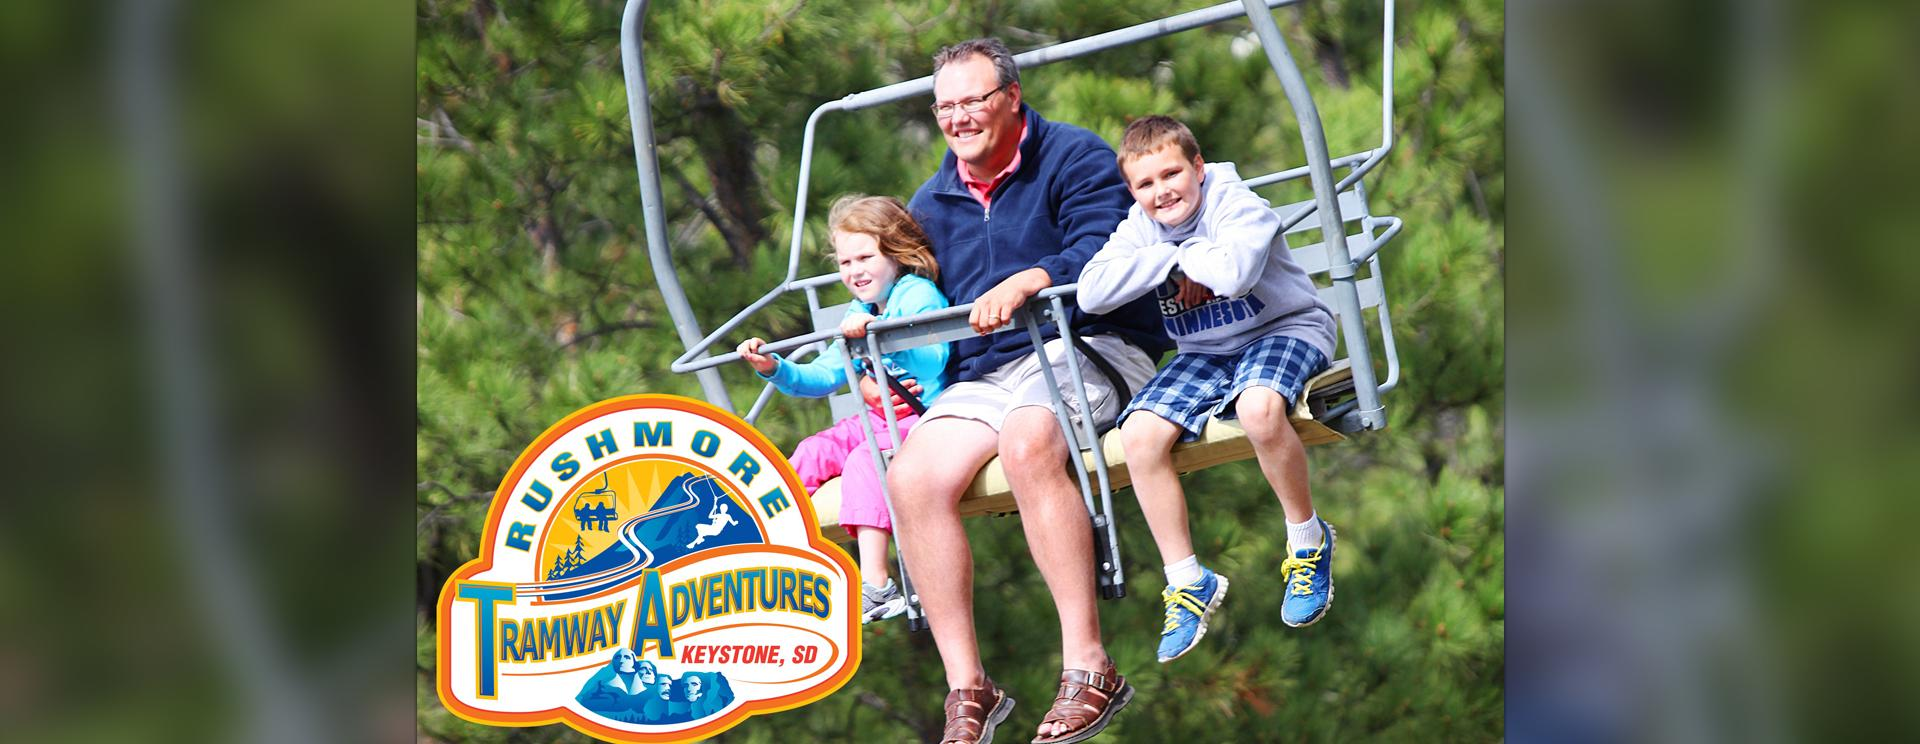 Aerial Adventure Park at Rushmore Tramway Adventures*